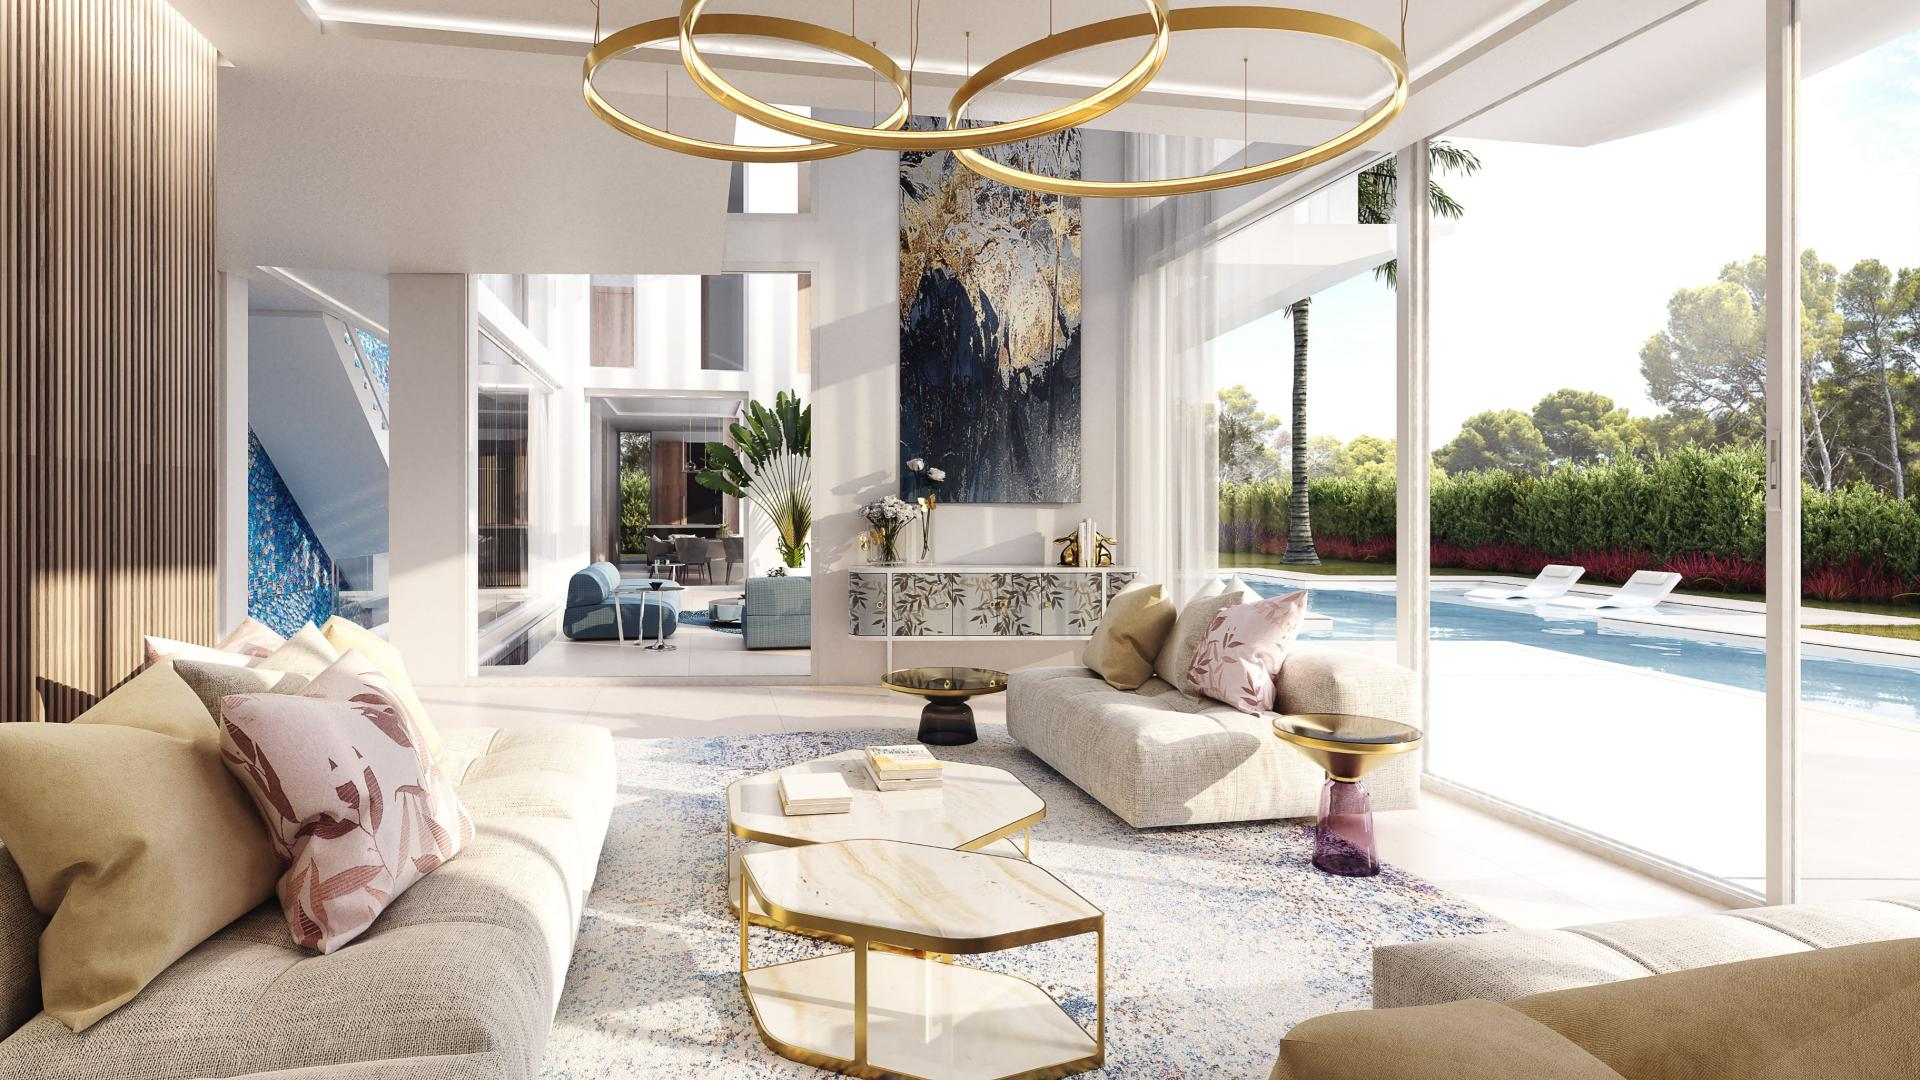 Top 10 Contemporary Homes in 2020 - Blog